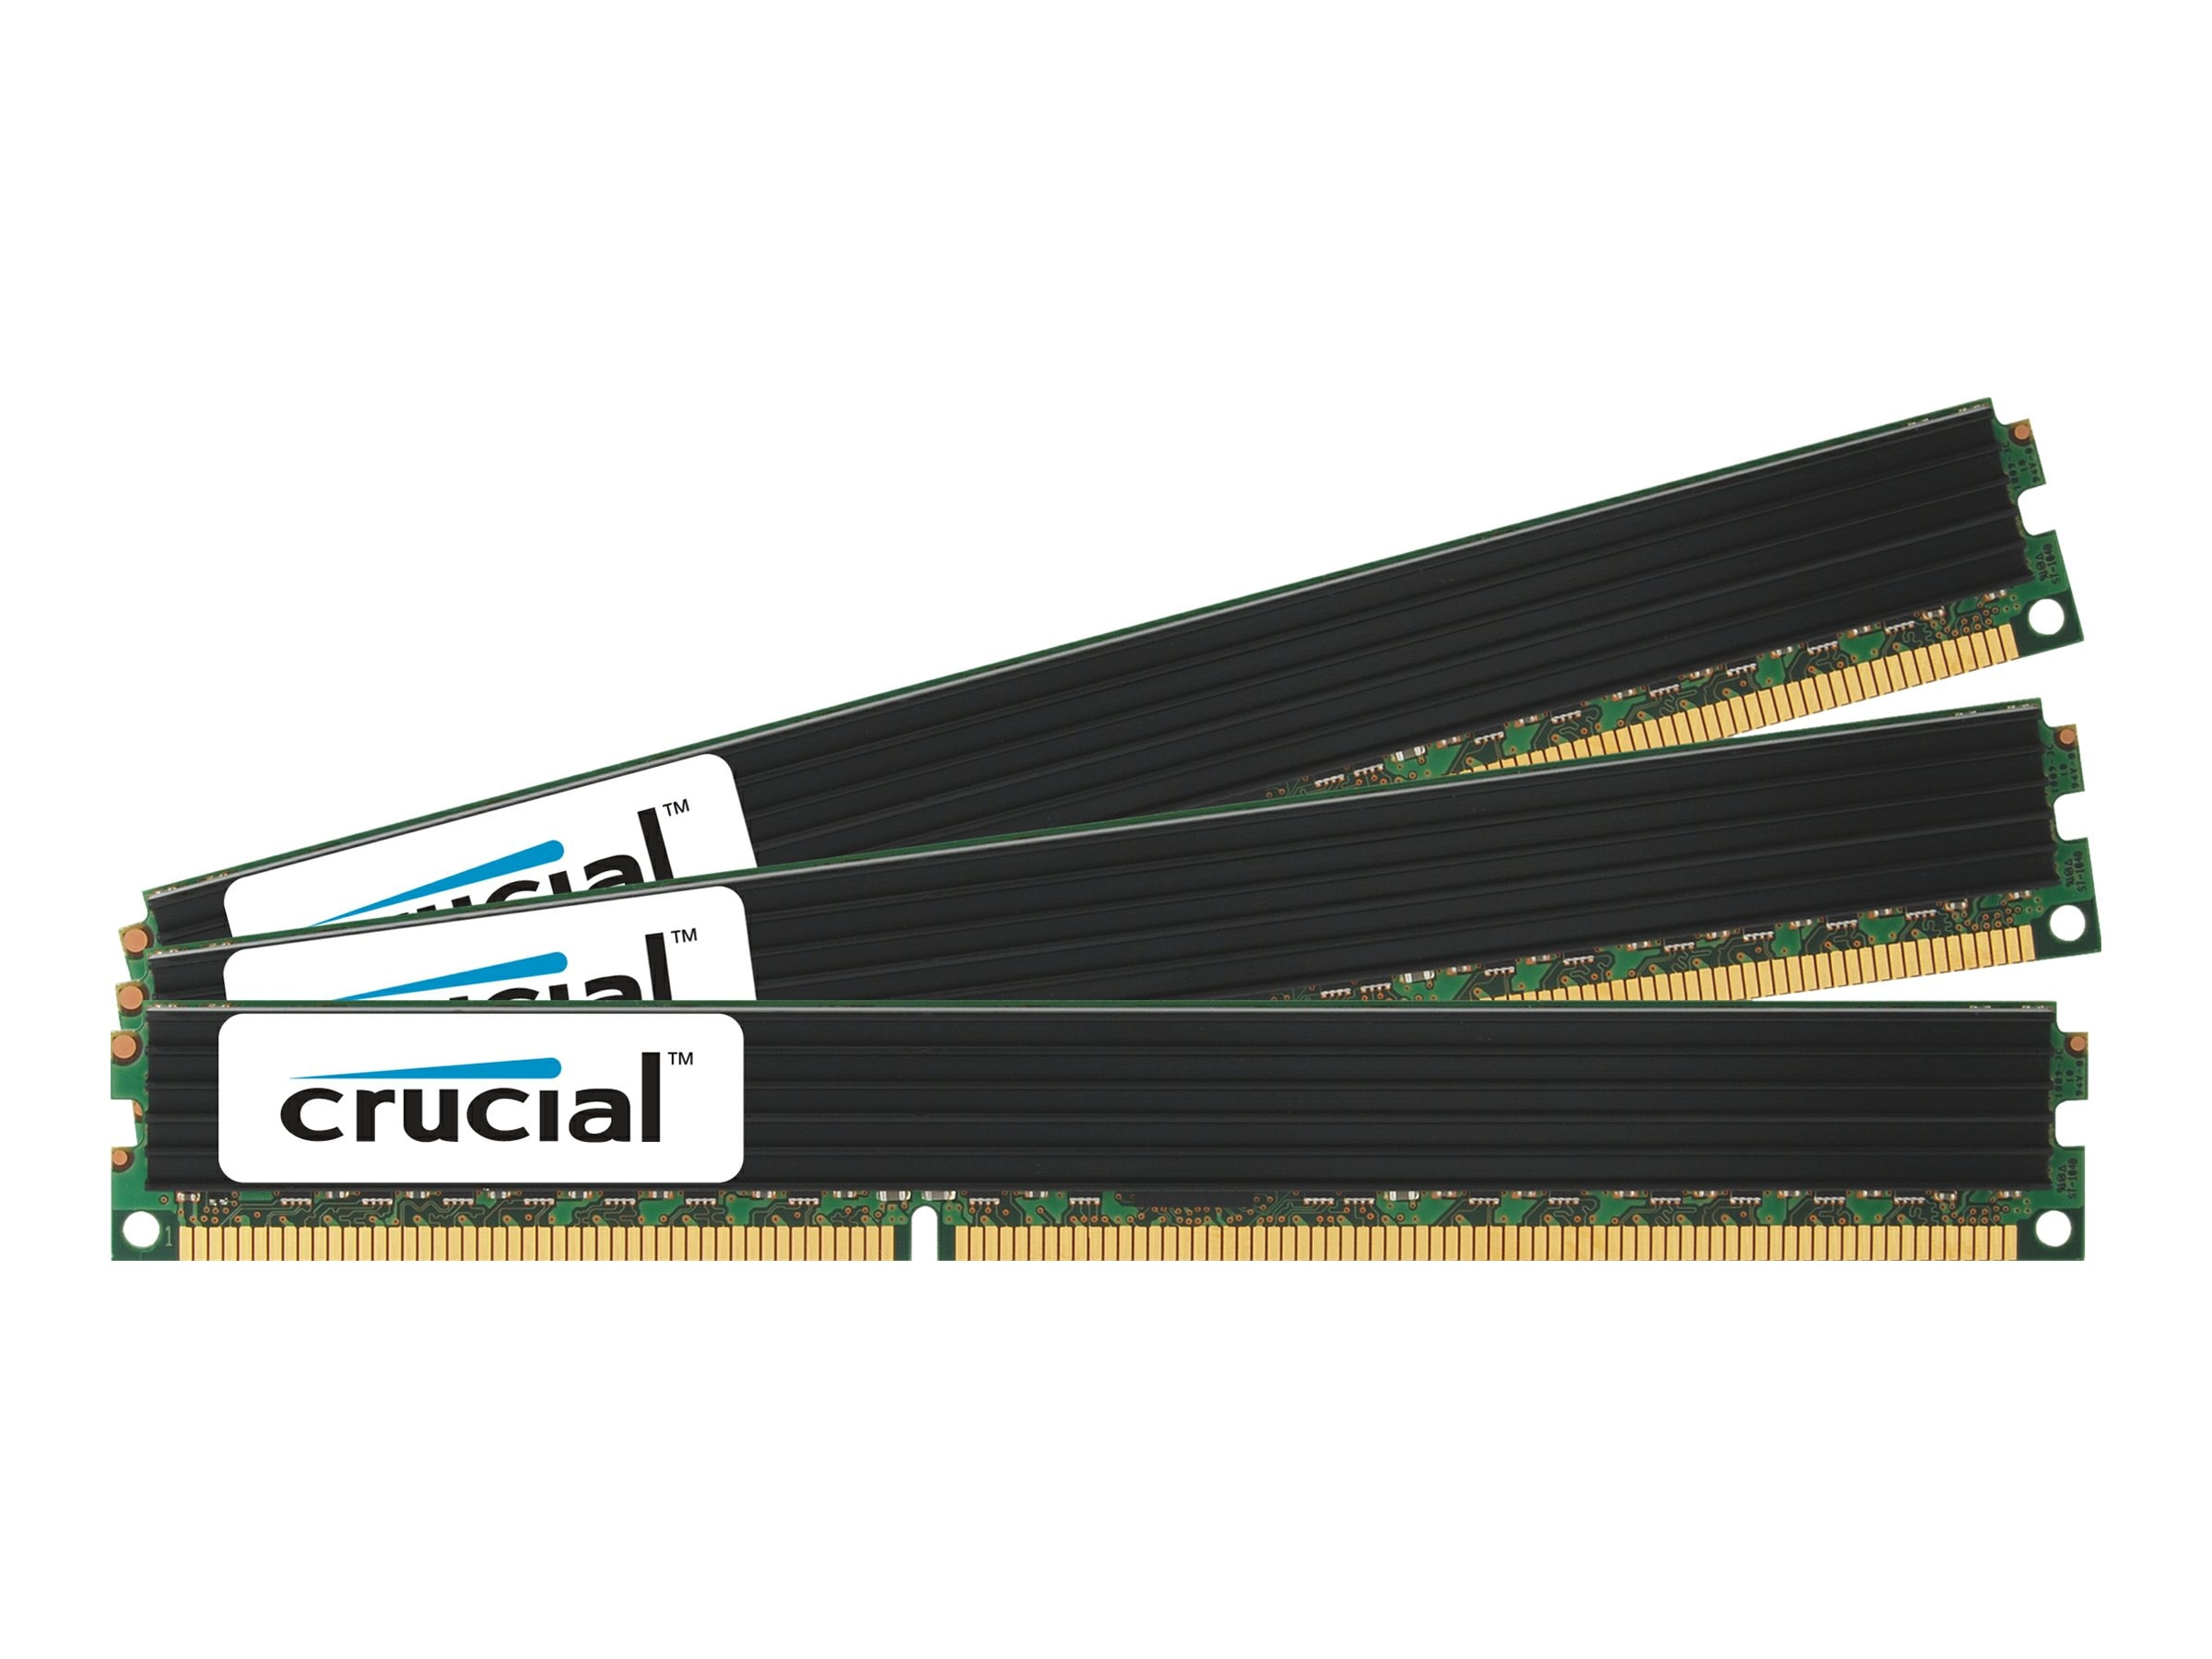 Crucial 12GB PC3-14900 240-pin DDR3 SDRAM RDIMM Kit, CT3K4G3ERVDD8186D, 23307945, Memory